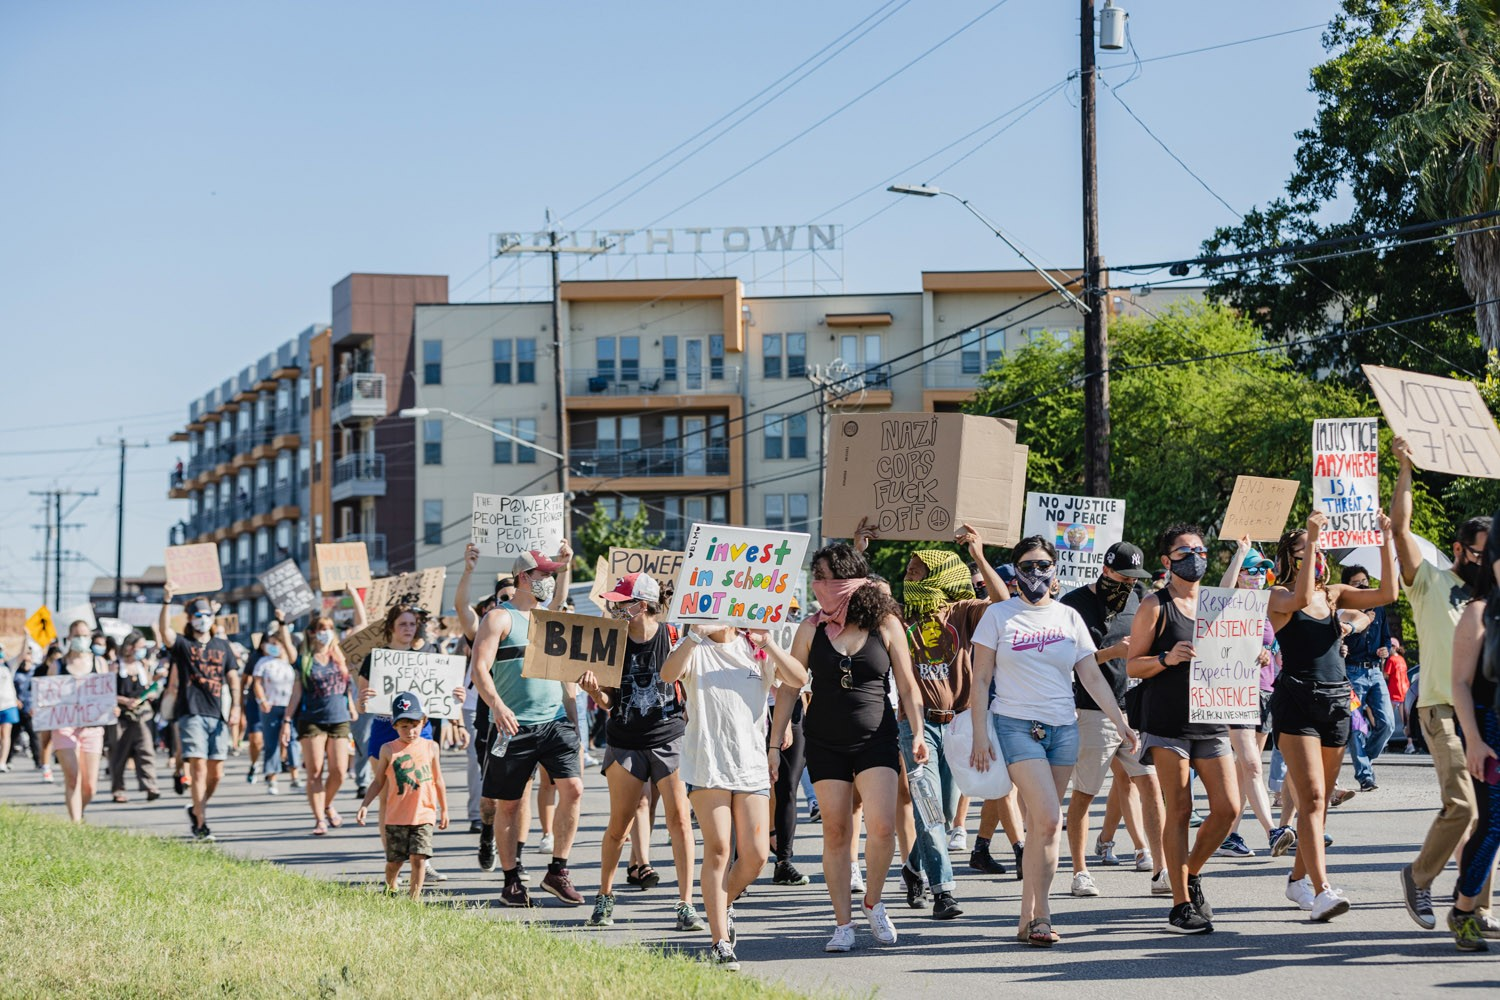 A Black Lives Matter protest makes its way from Blue Star Arts Complex to La Villita on Monday, June 8, 2020. <b>Photo by Isaiah Alonzo | Heron contributor</b>